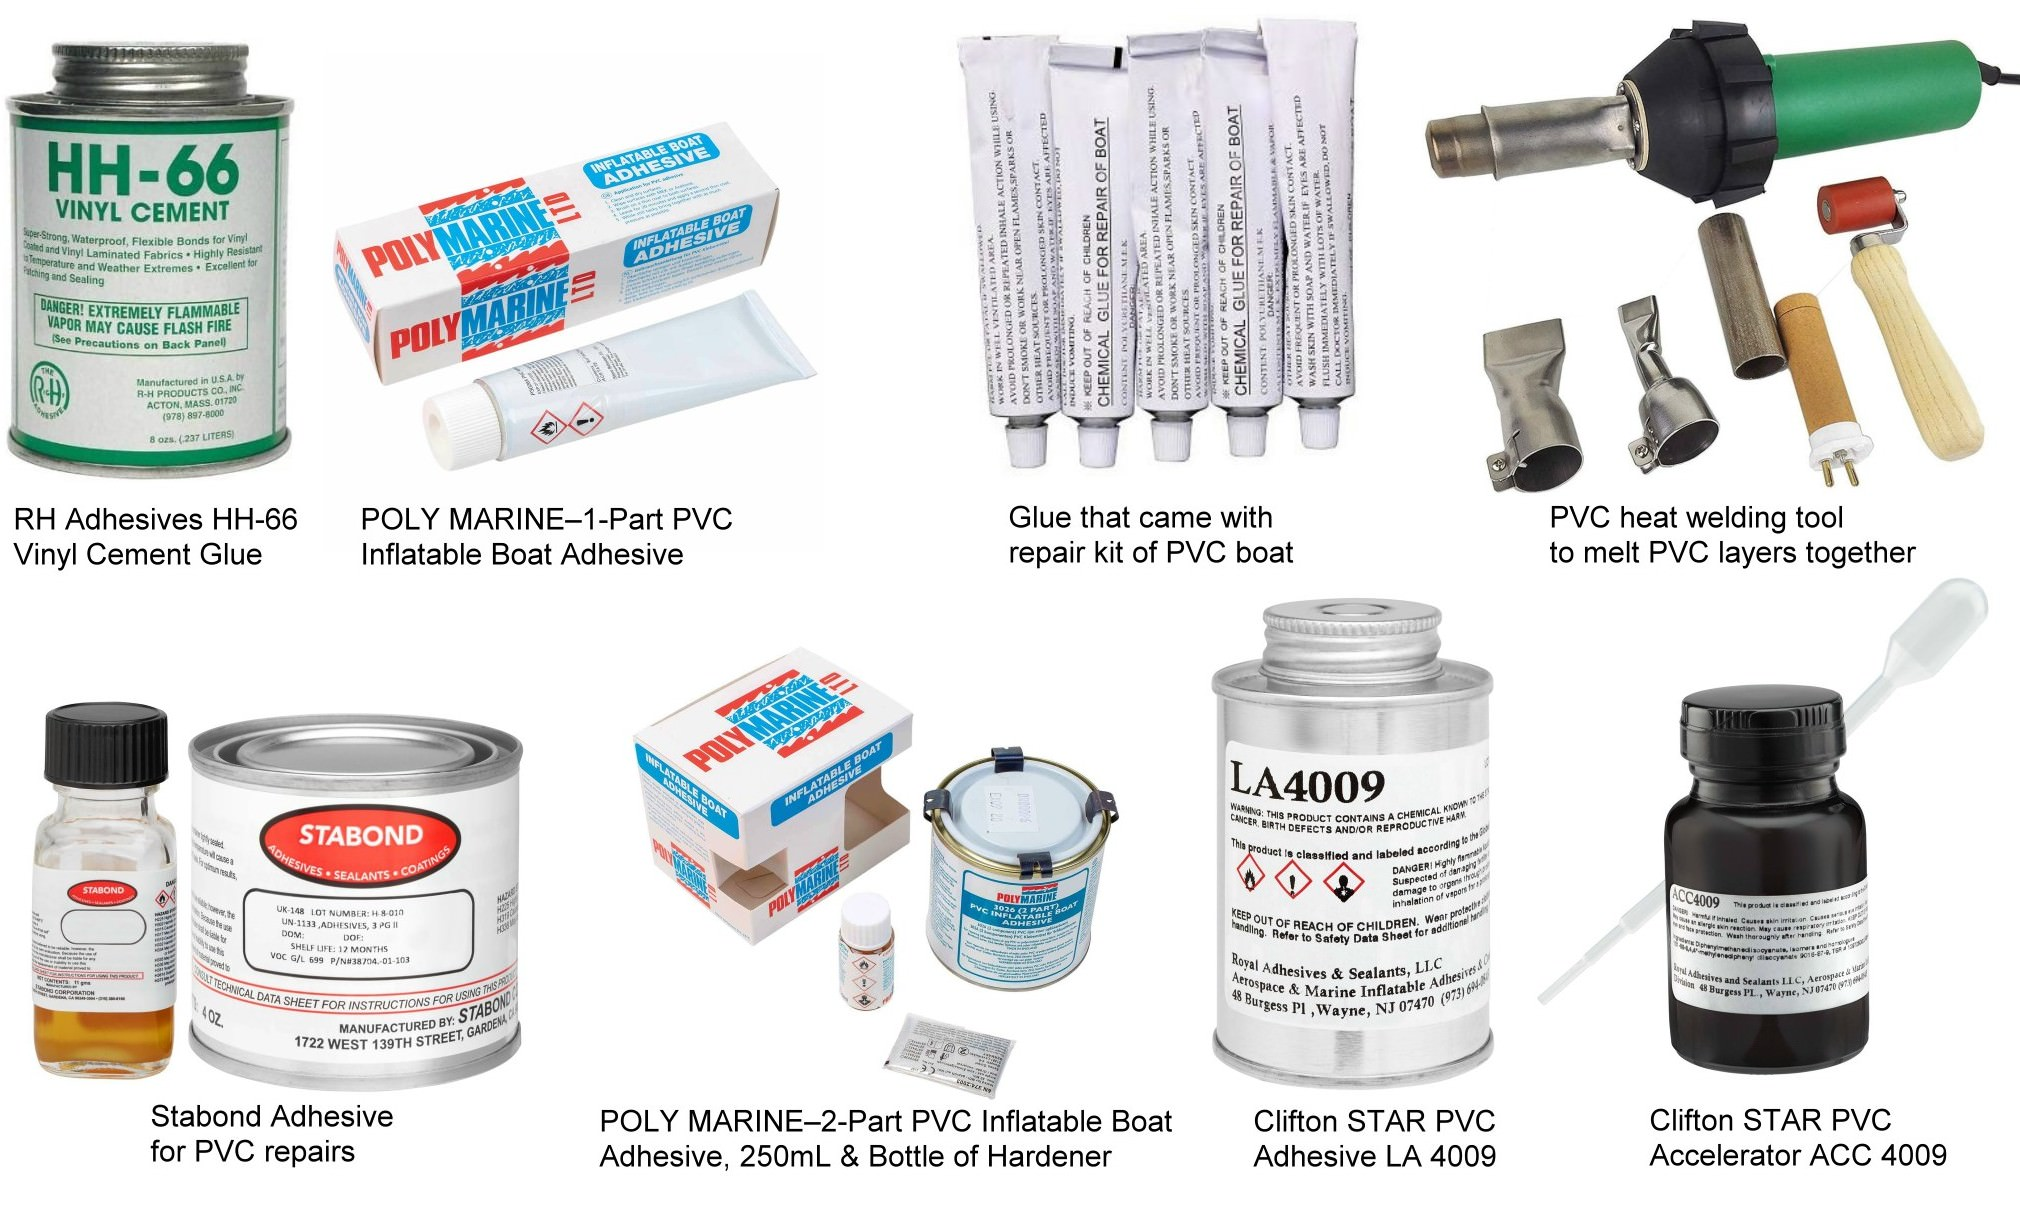 Types of glue for PVC boat repairs and heat welding method